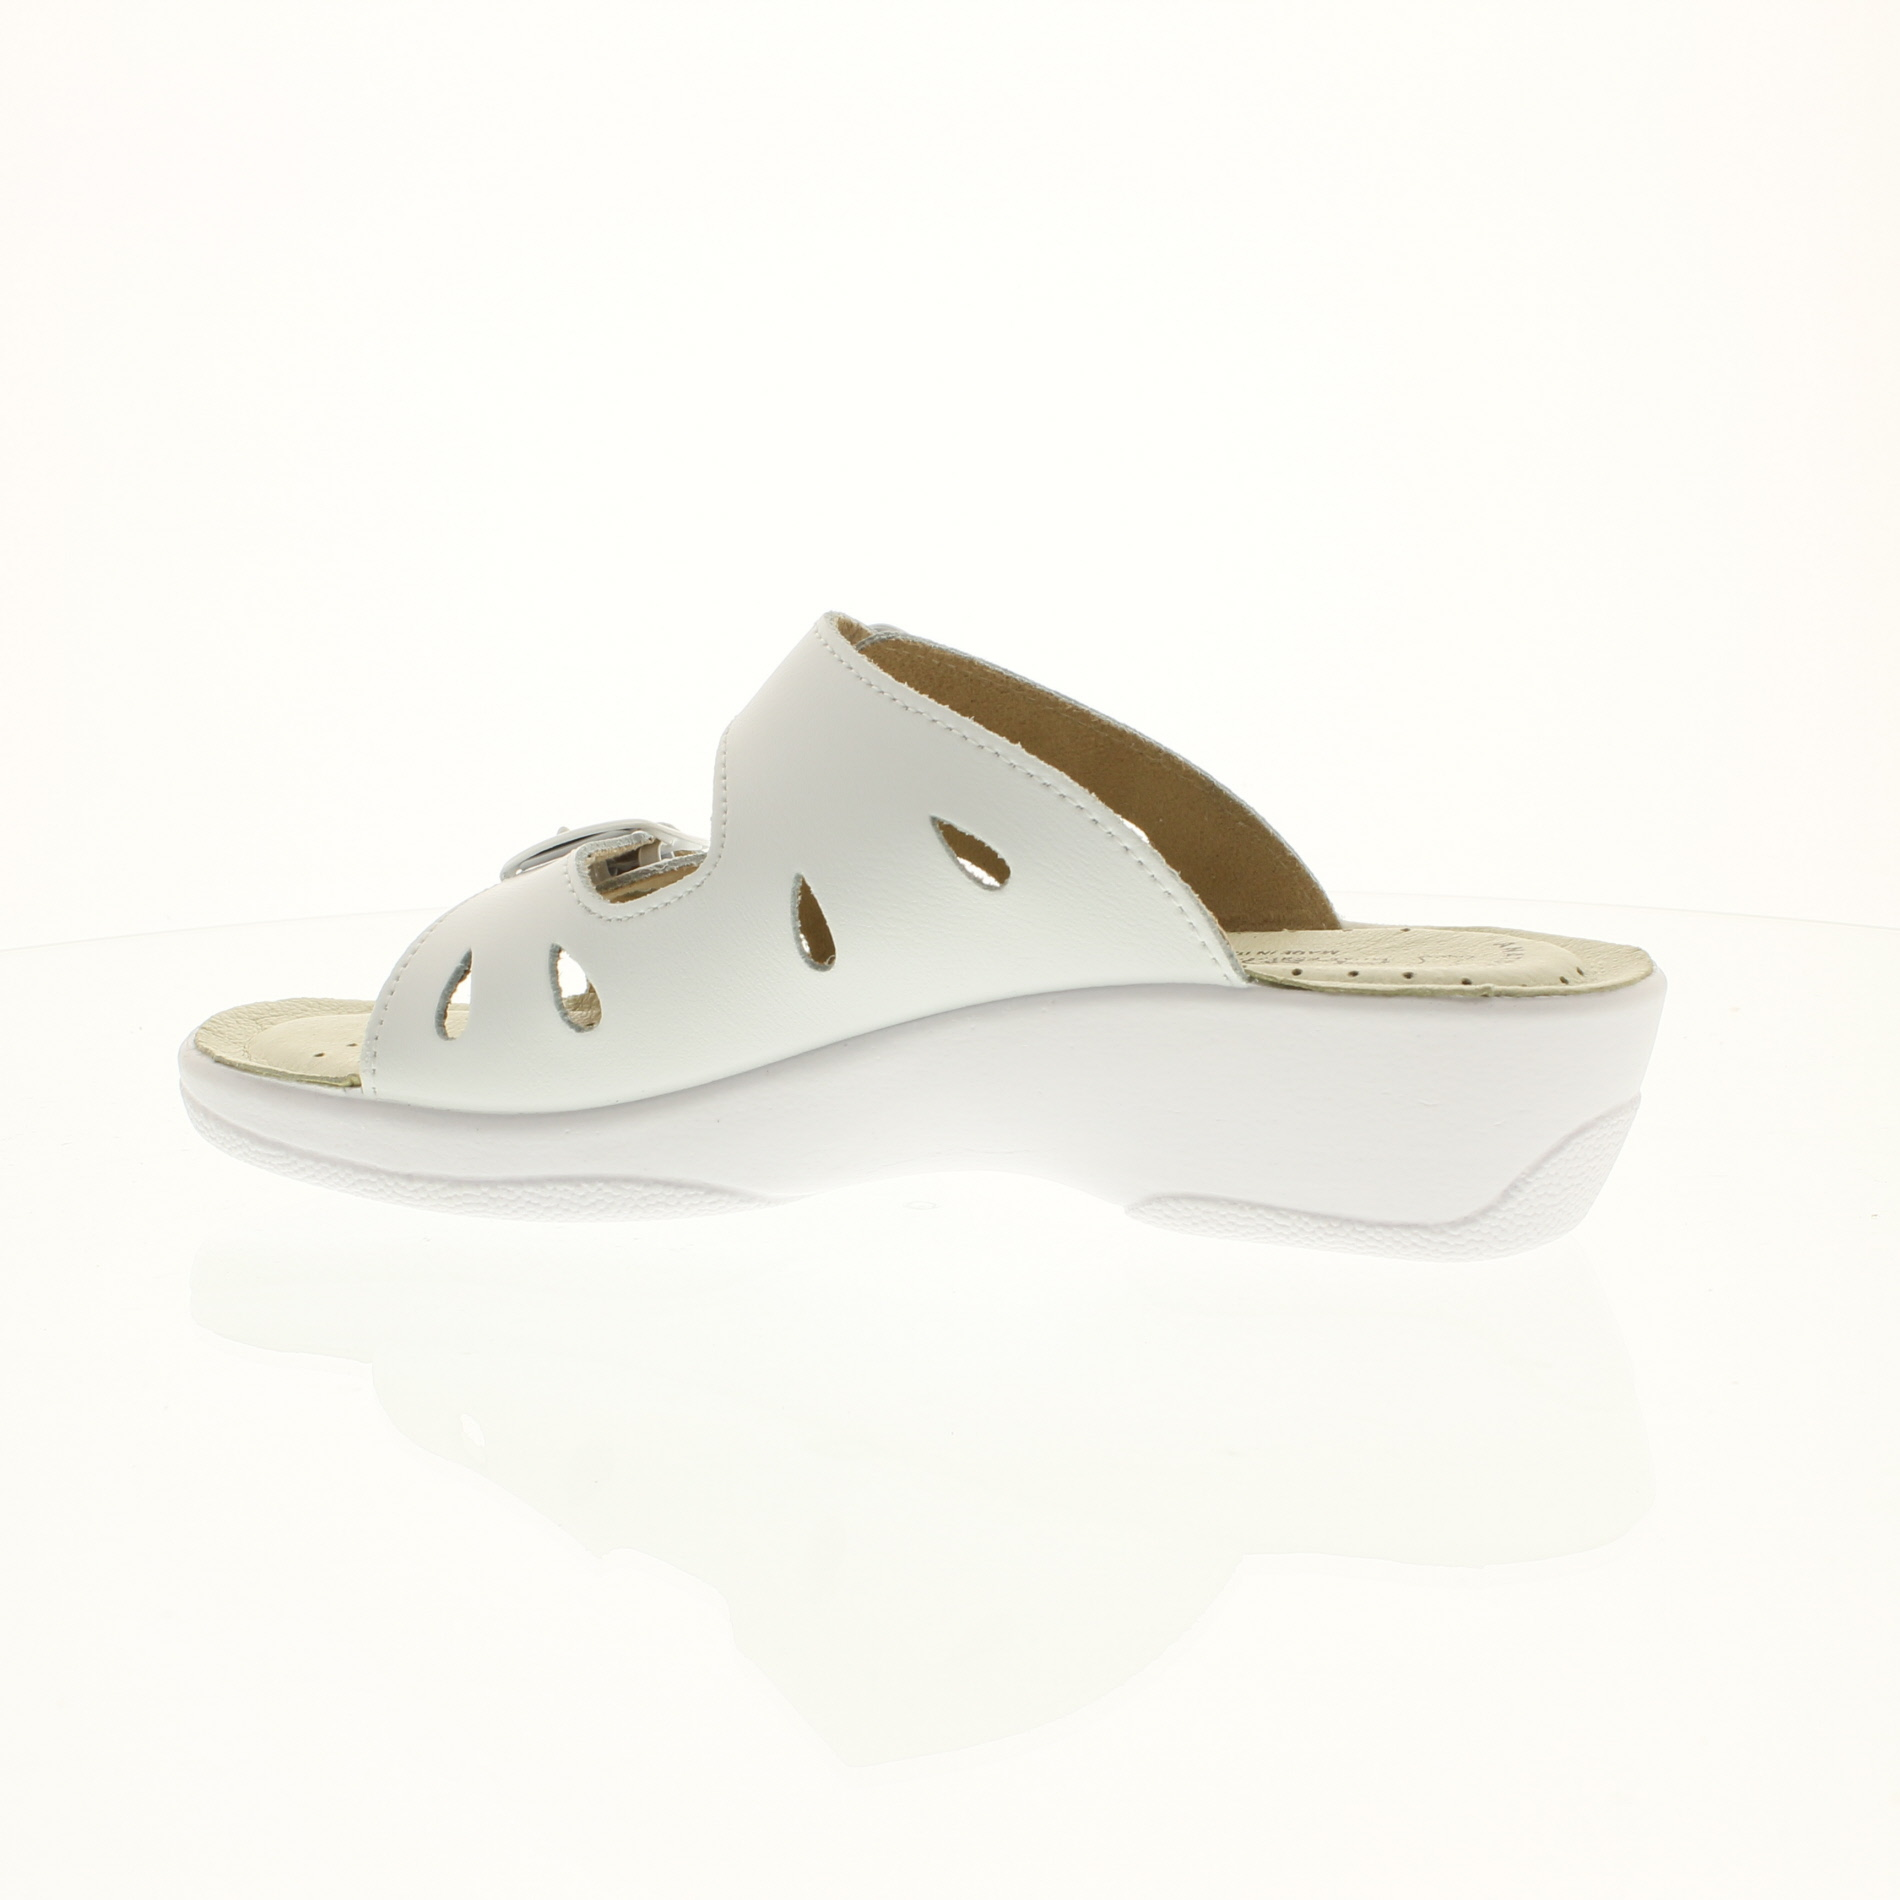 Flexus Decca White Slide Sandal by Spring Step - River ...